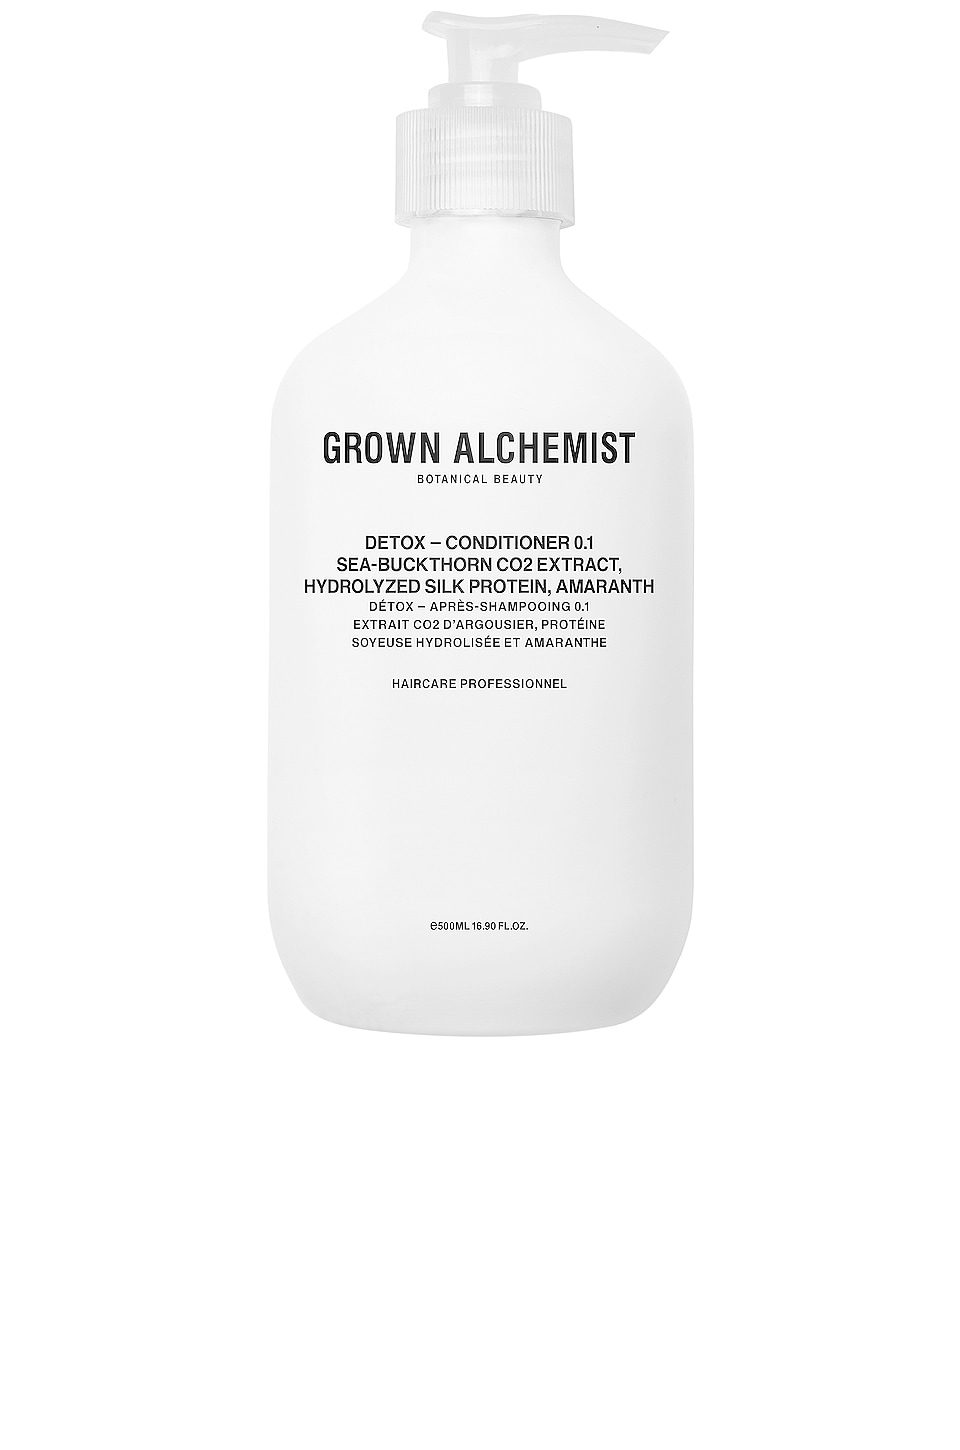 Grown Alchemist Detox Conditioner 0.1 in Sea-Buckthorn CO2 Extract & Hydrolyzed Silk Protein & Amaranth